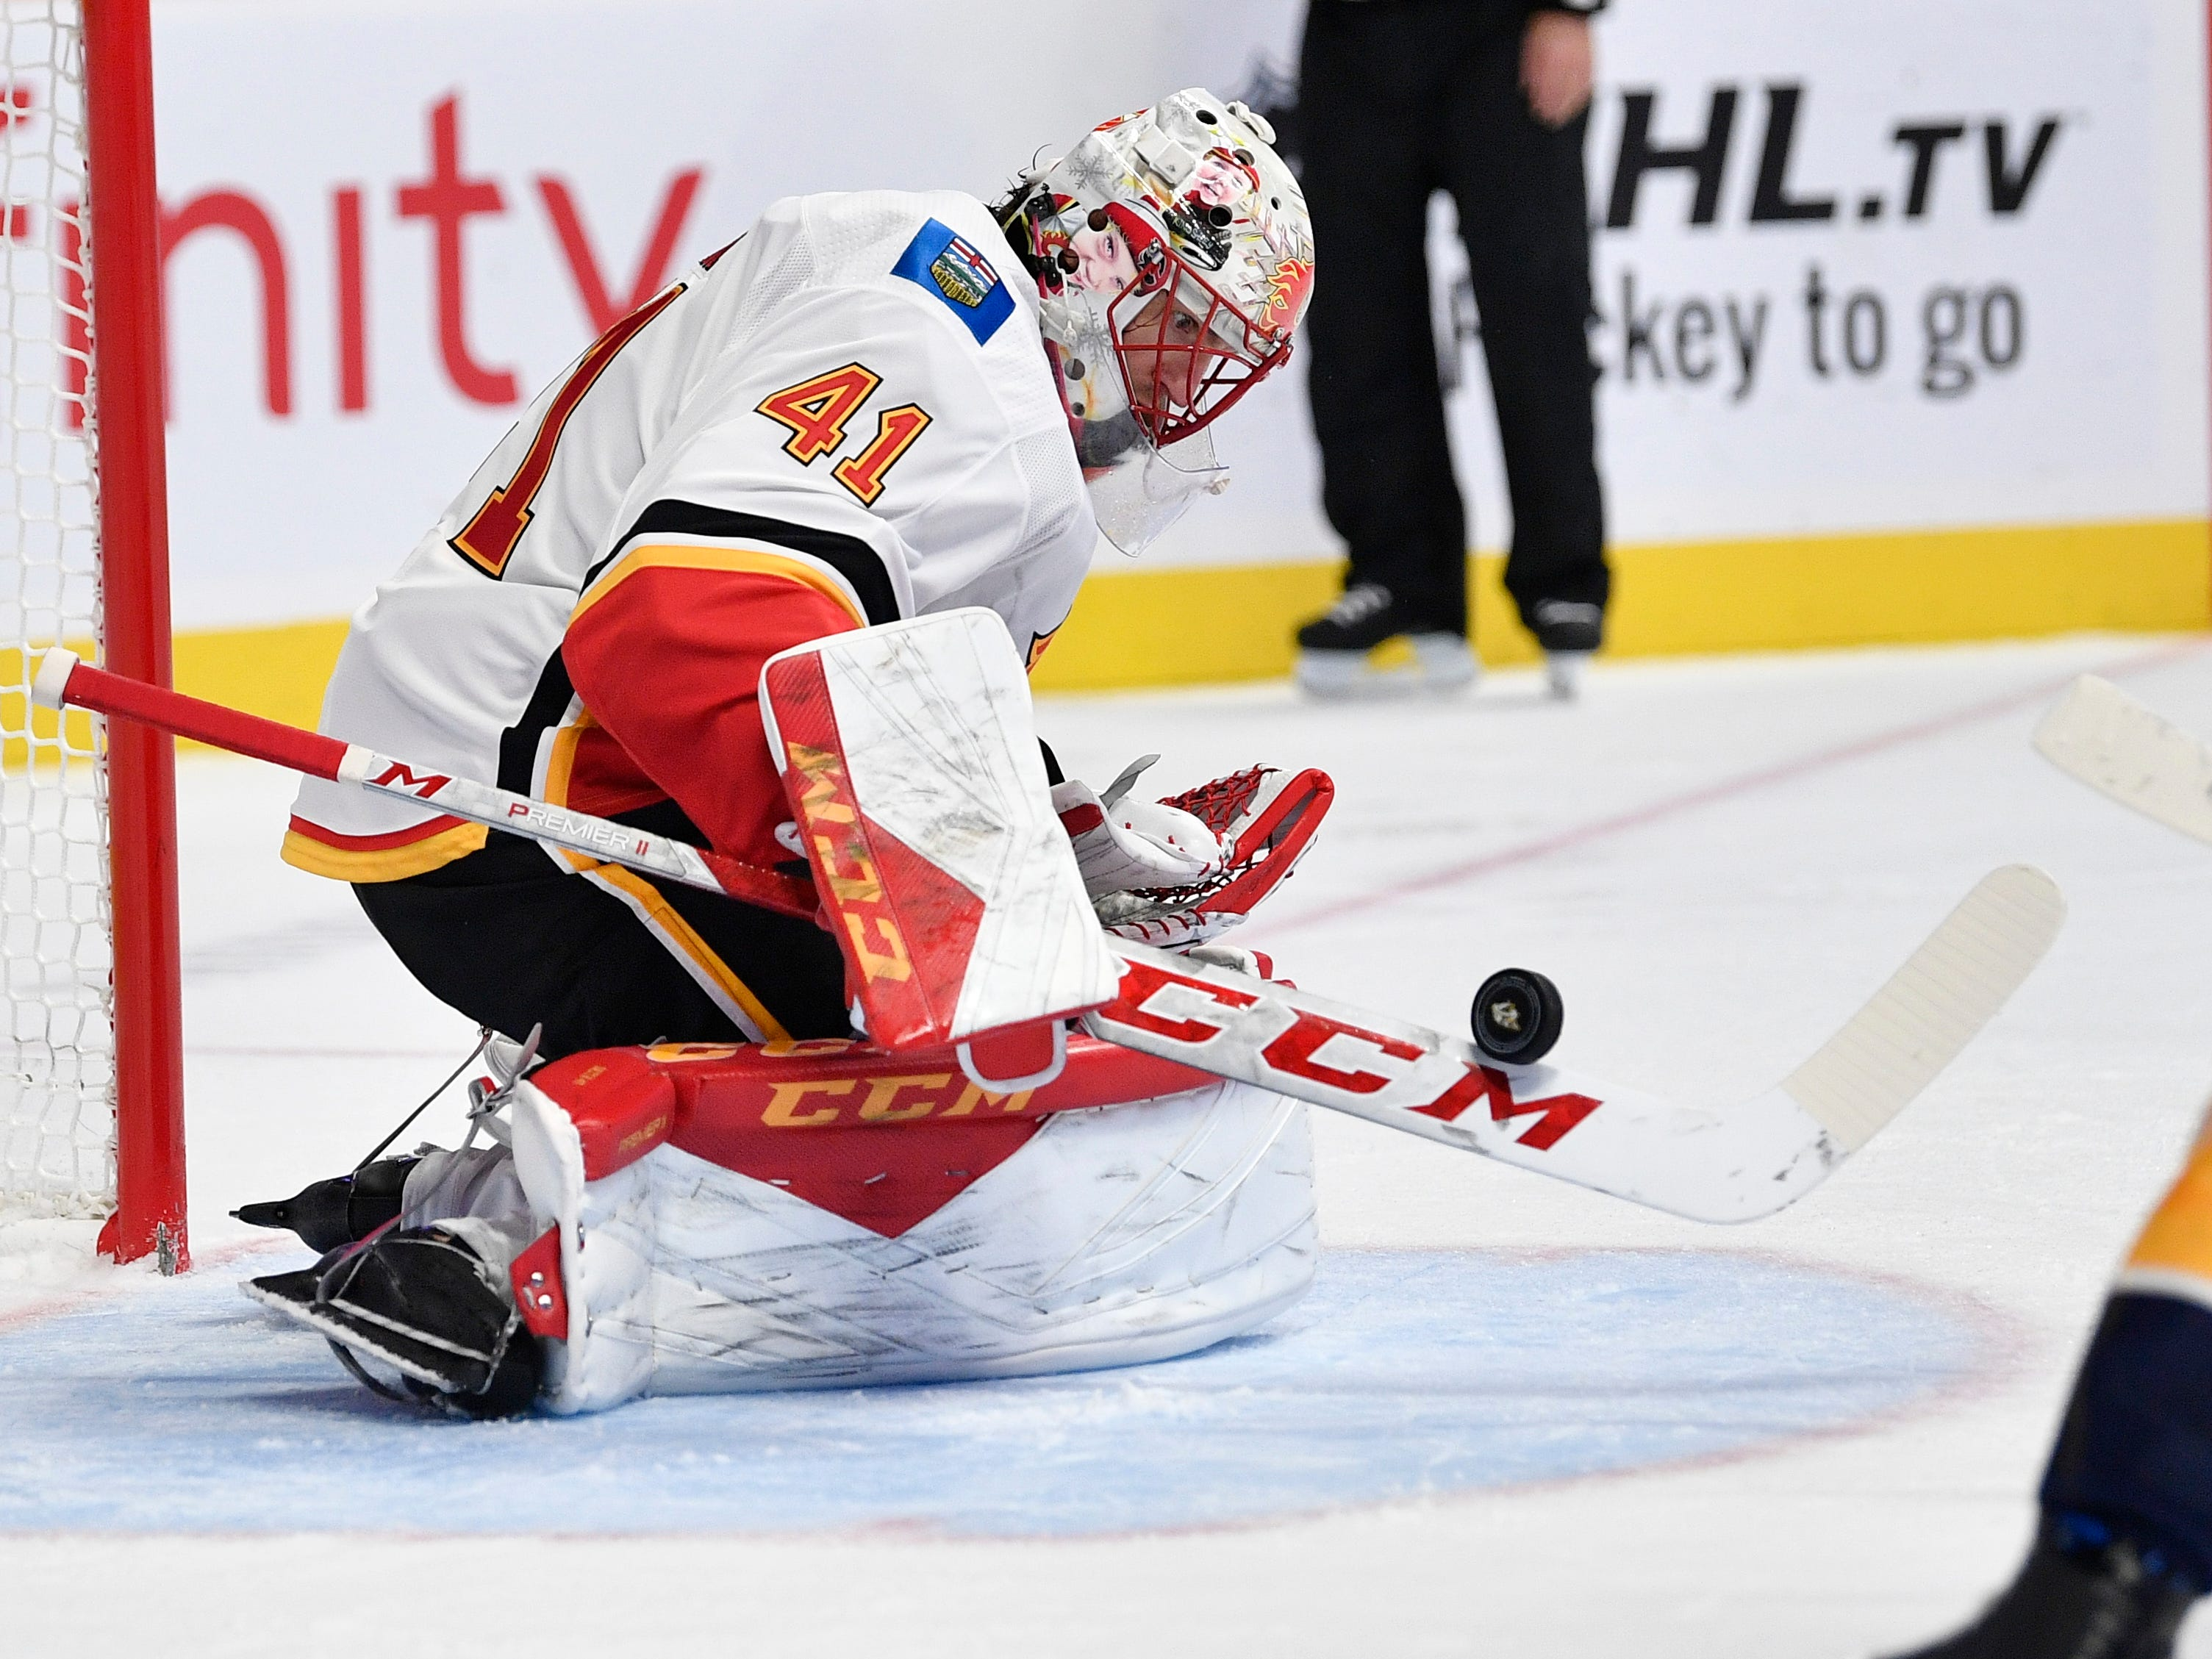 Calgary Flames goaltender Mike Smith (41) stops a Predators shot in the third period of the home opener at Bridgestone Arena in Nashville, Tenn., Tuesday, Oct. 9, 2018.